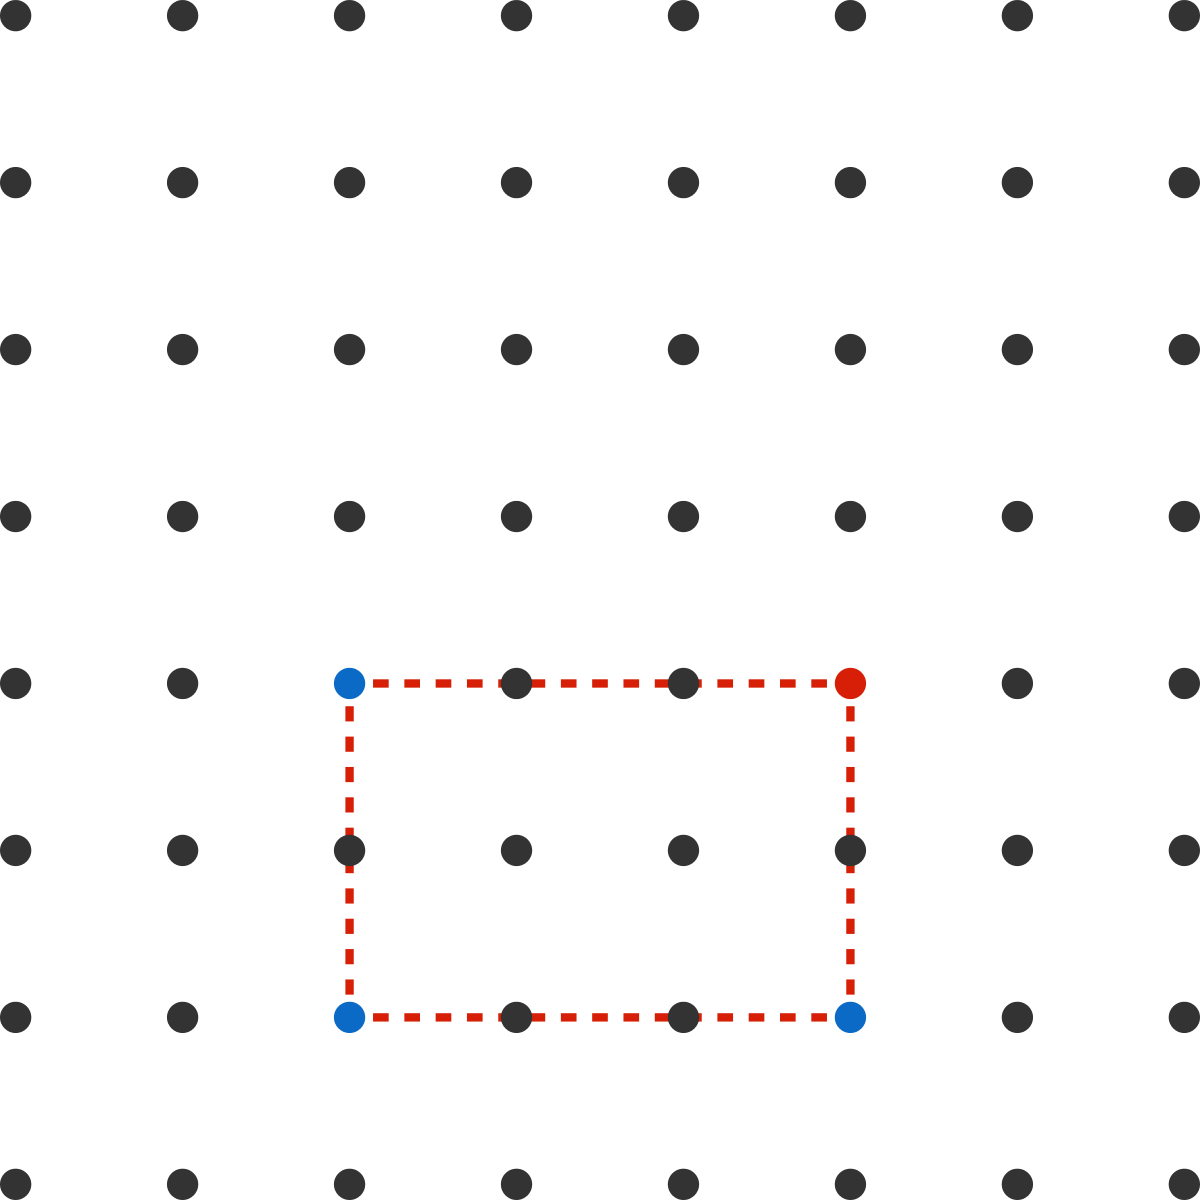 If the three blue points are selected, then the red point cannot be selected.